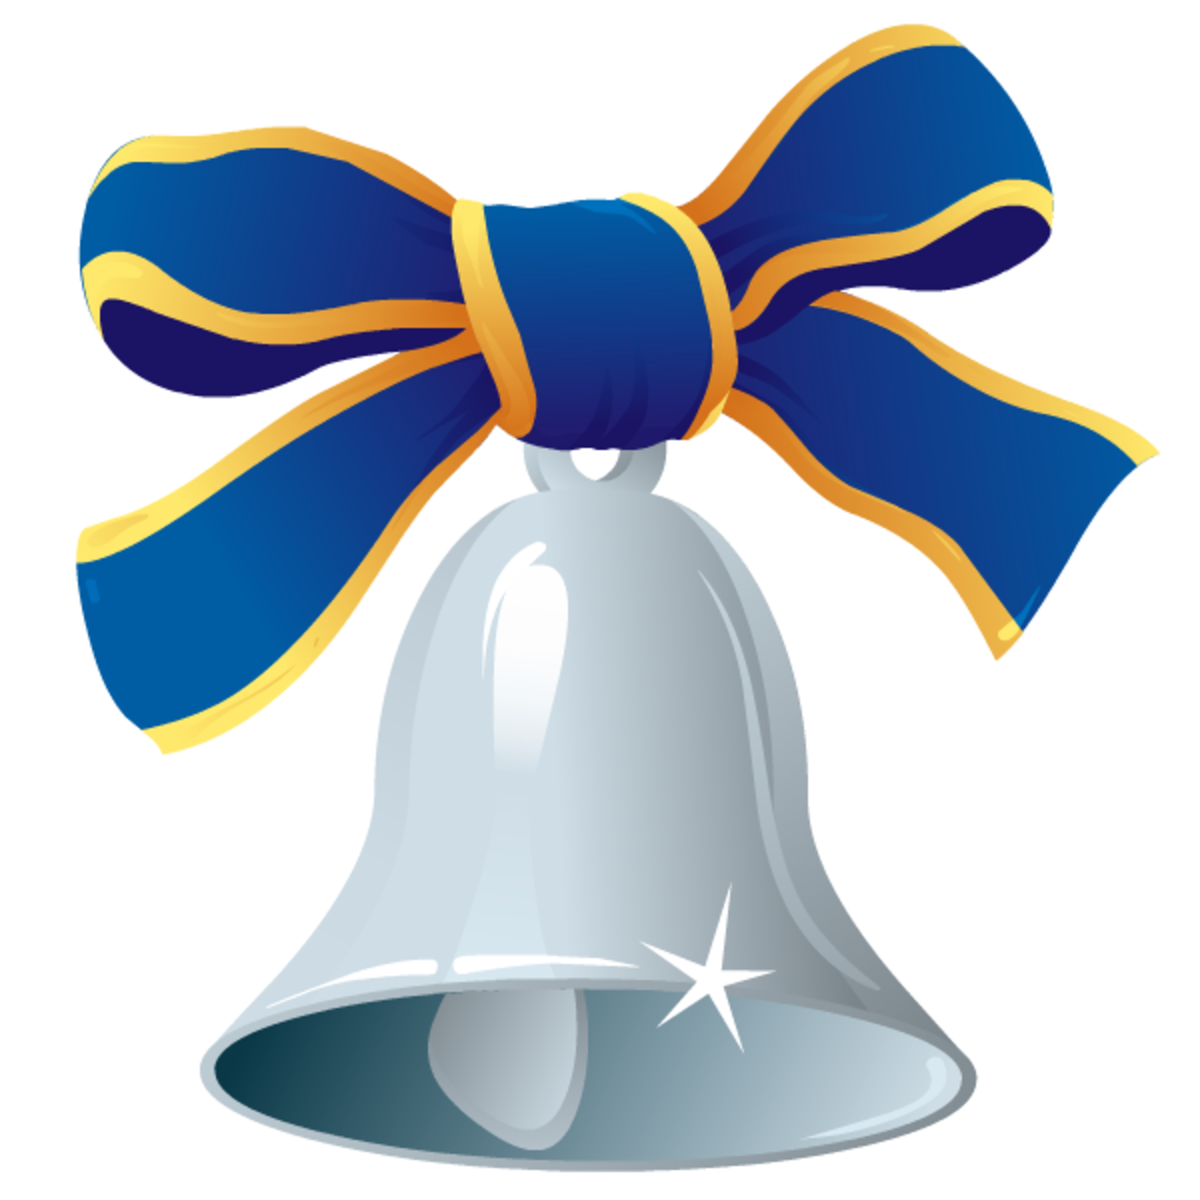 Silver bell with blue ribbon.